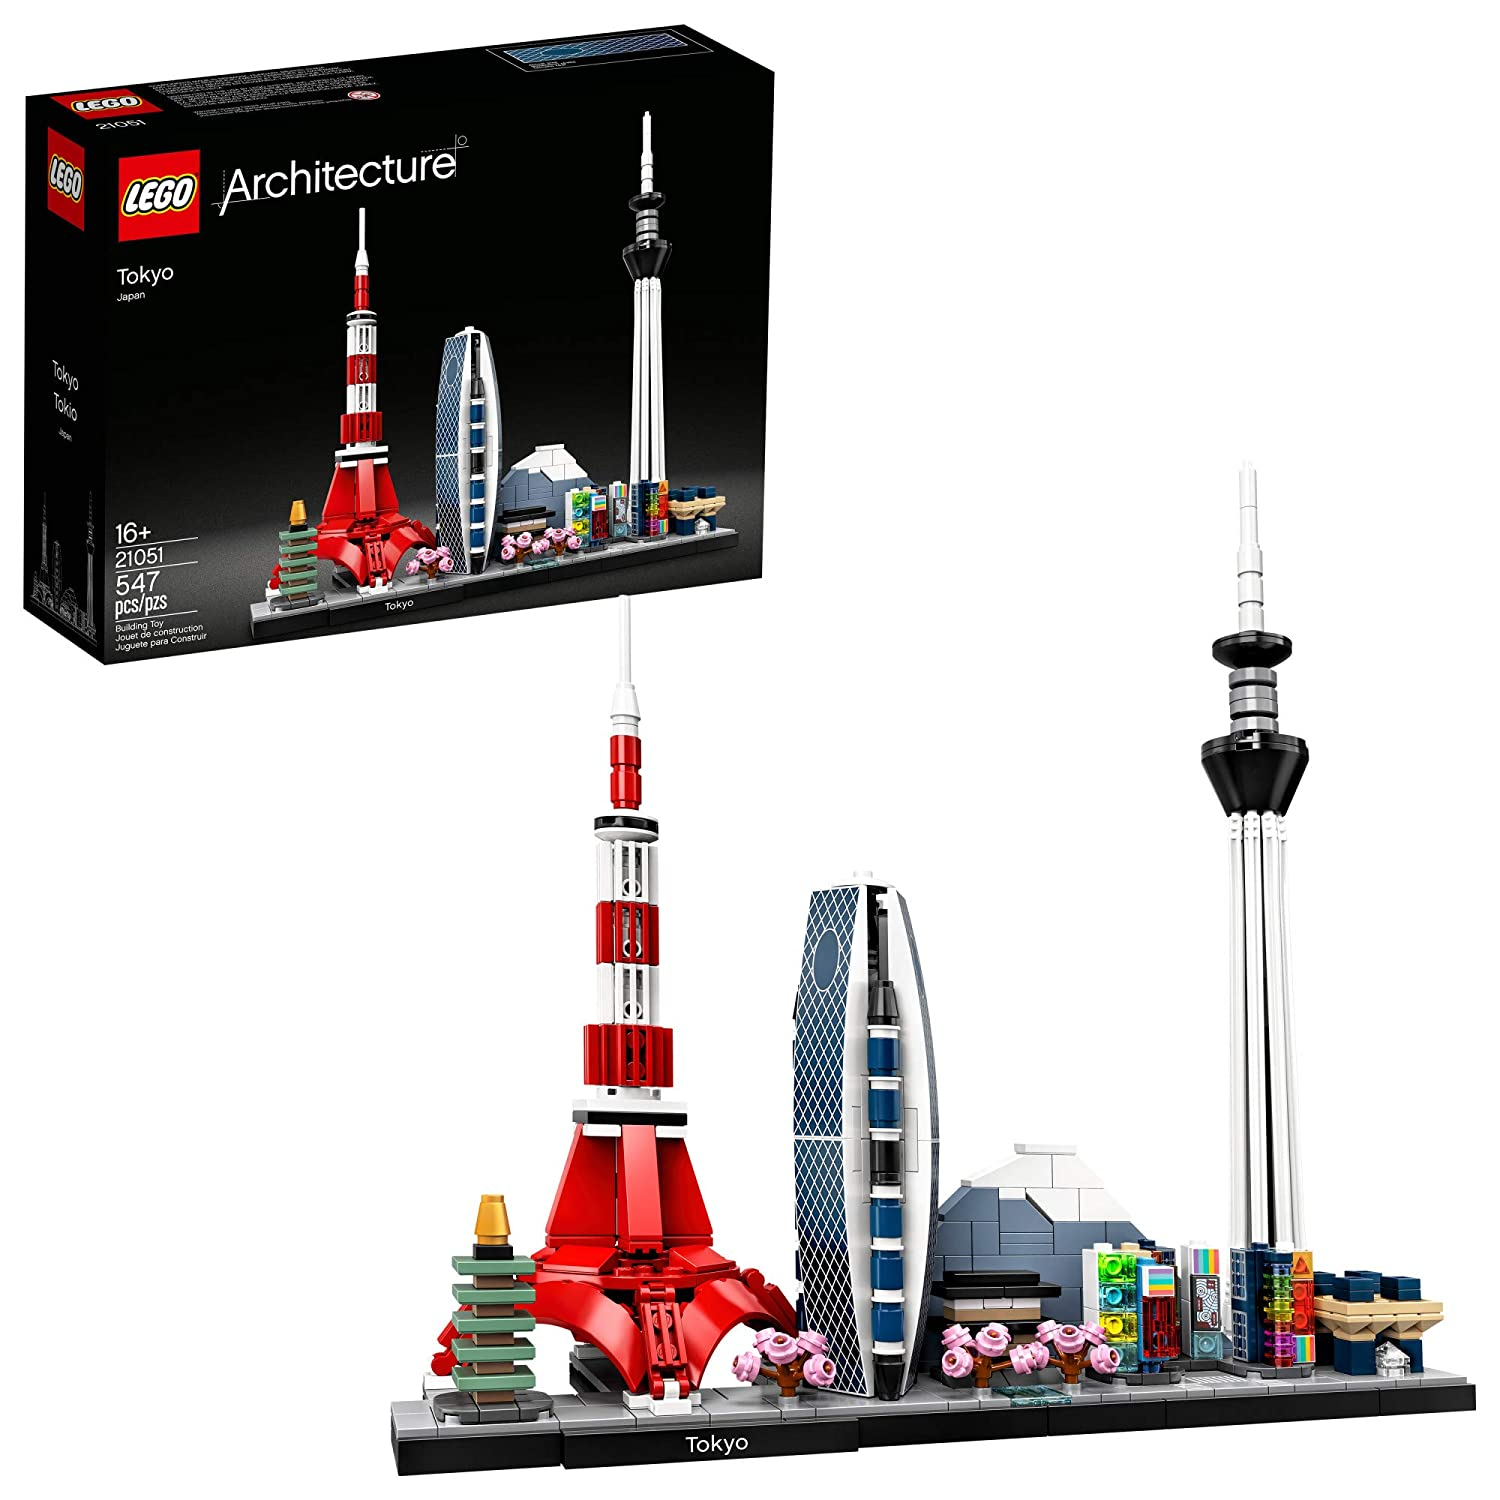 LEGO Architecture Skylines: Tokyo 21051 Building Kit, Collectible Architecture Building Set for Adults, New 2020 (547 Pieces)